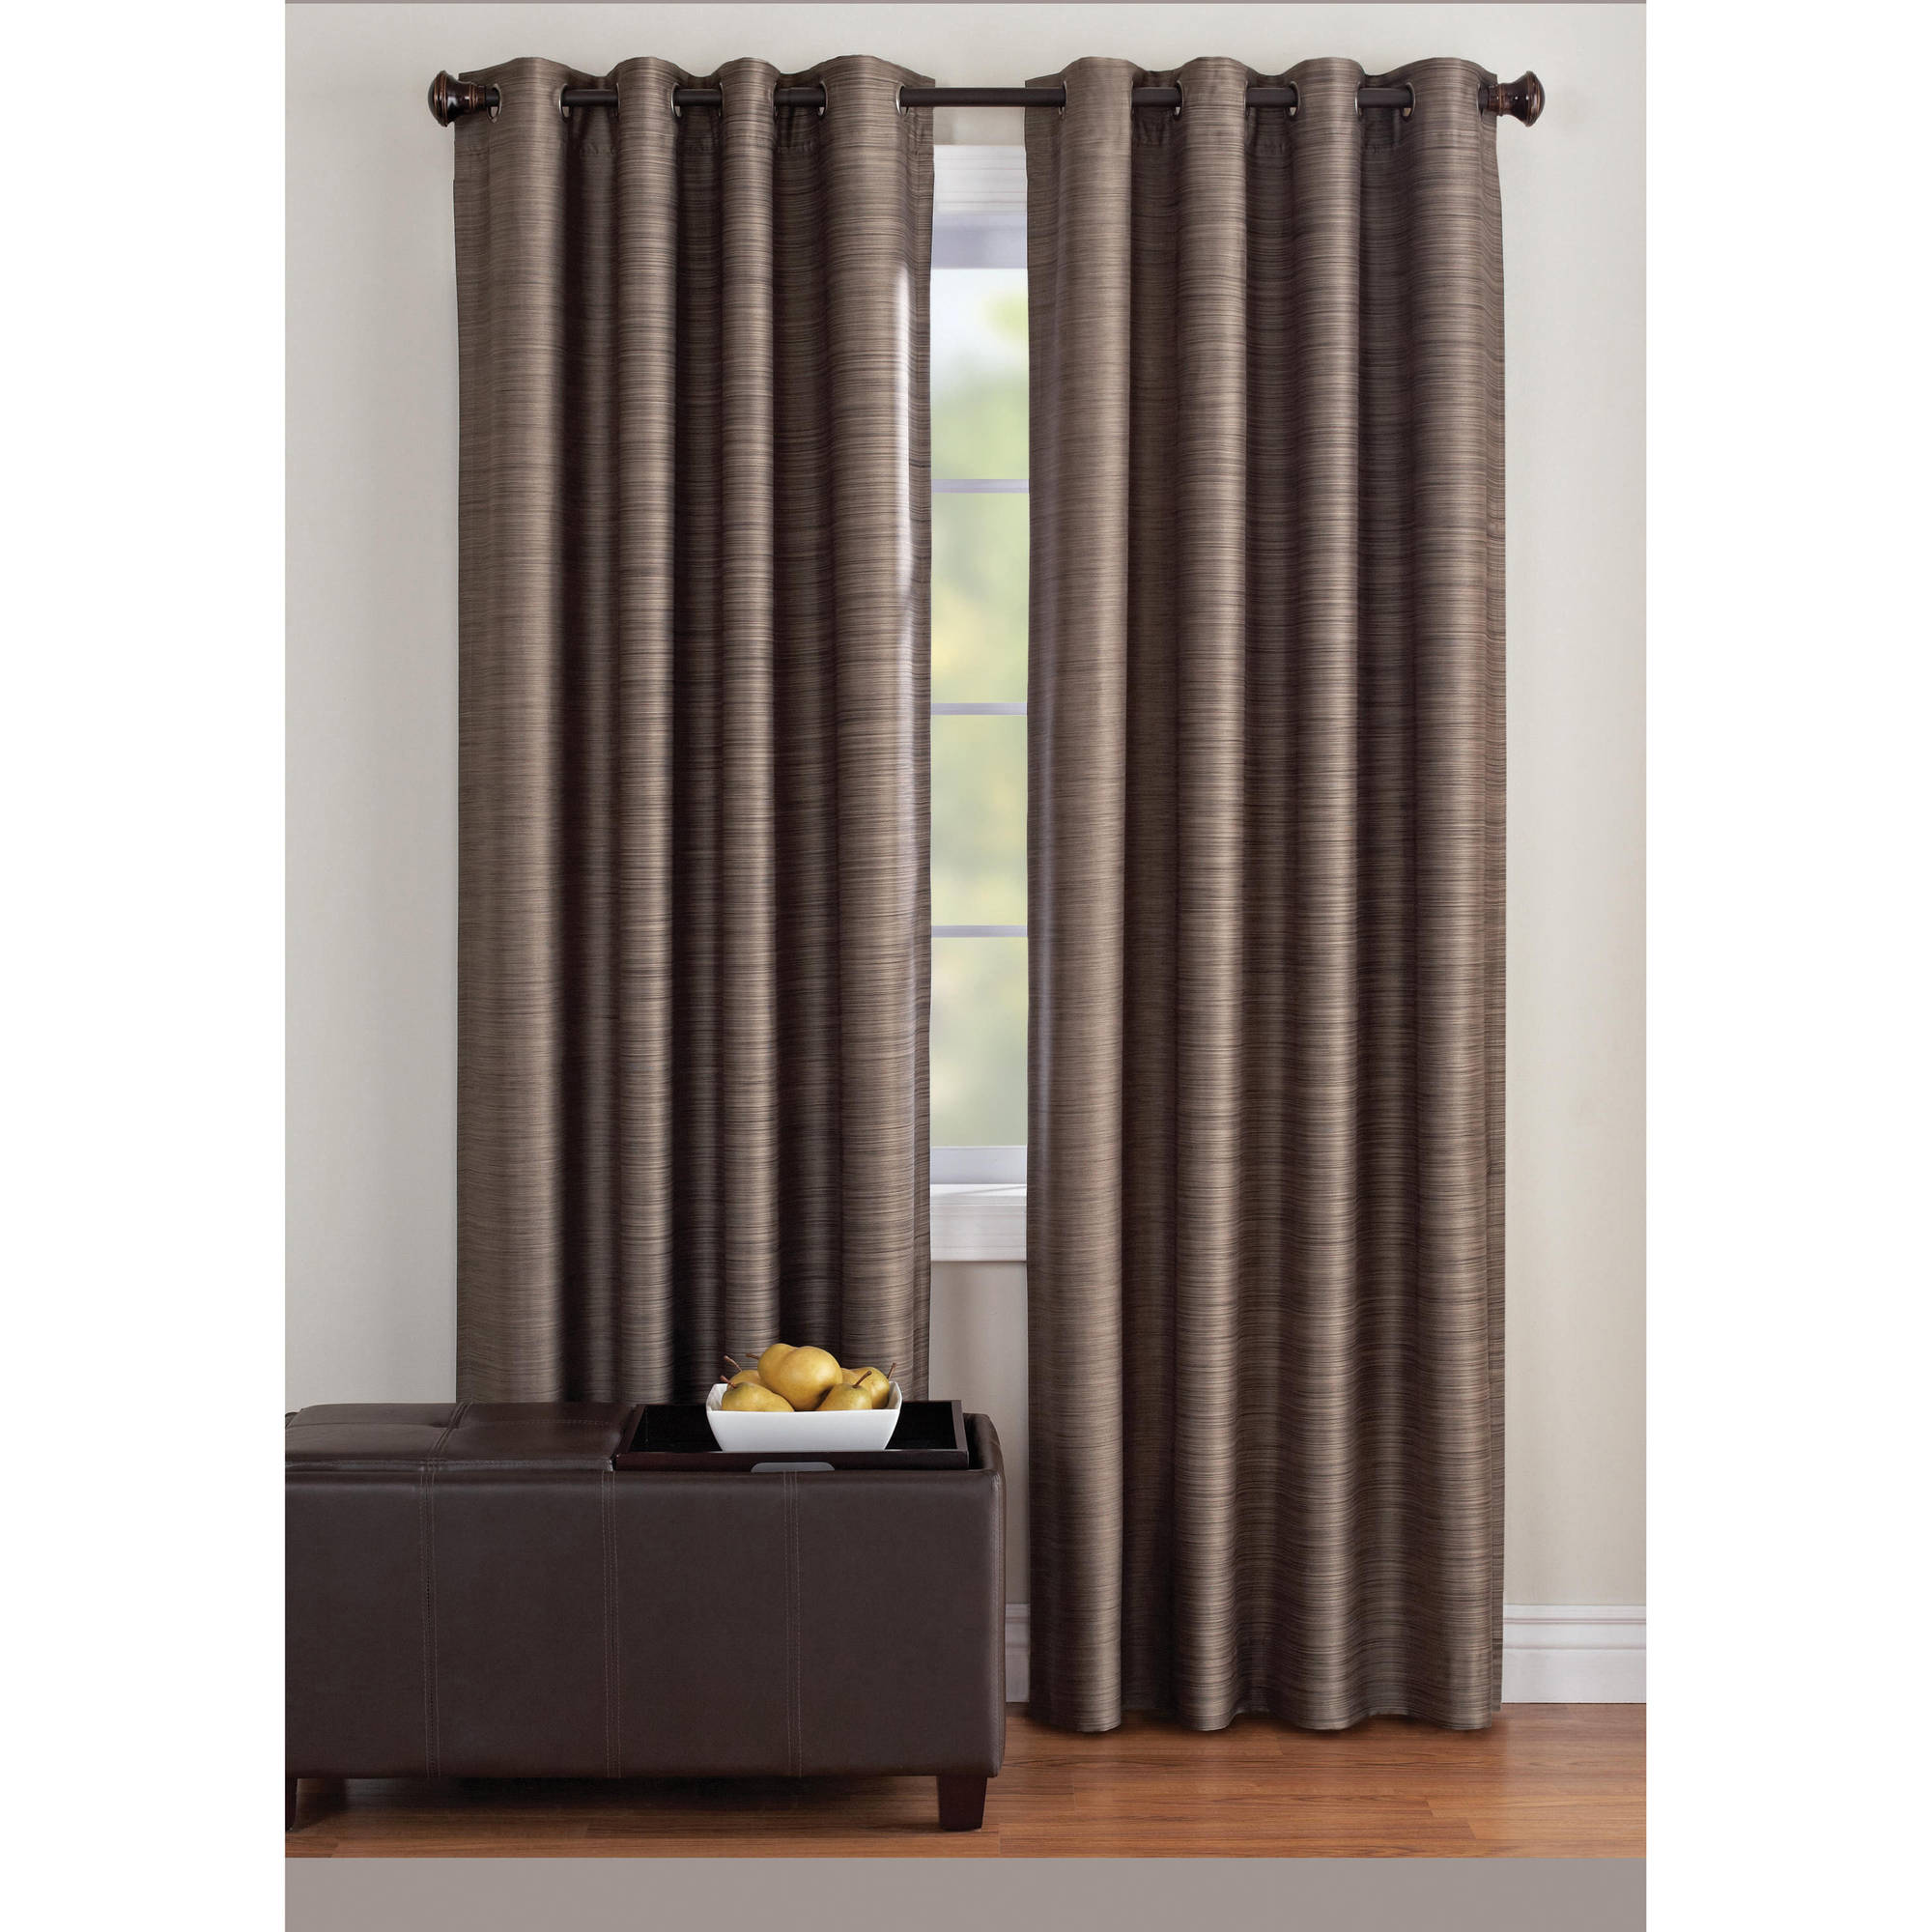 back p expand to lucerne tab click patio sheer semi panel curtain x curtains panels